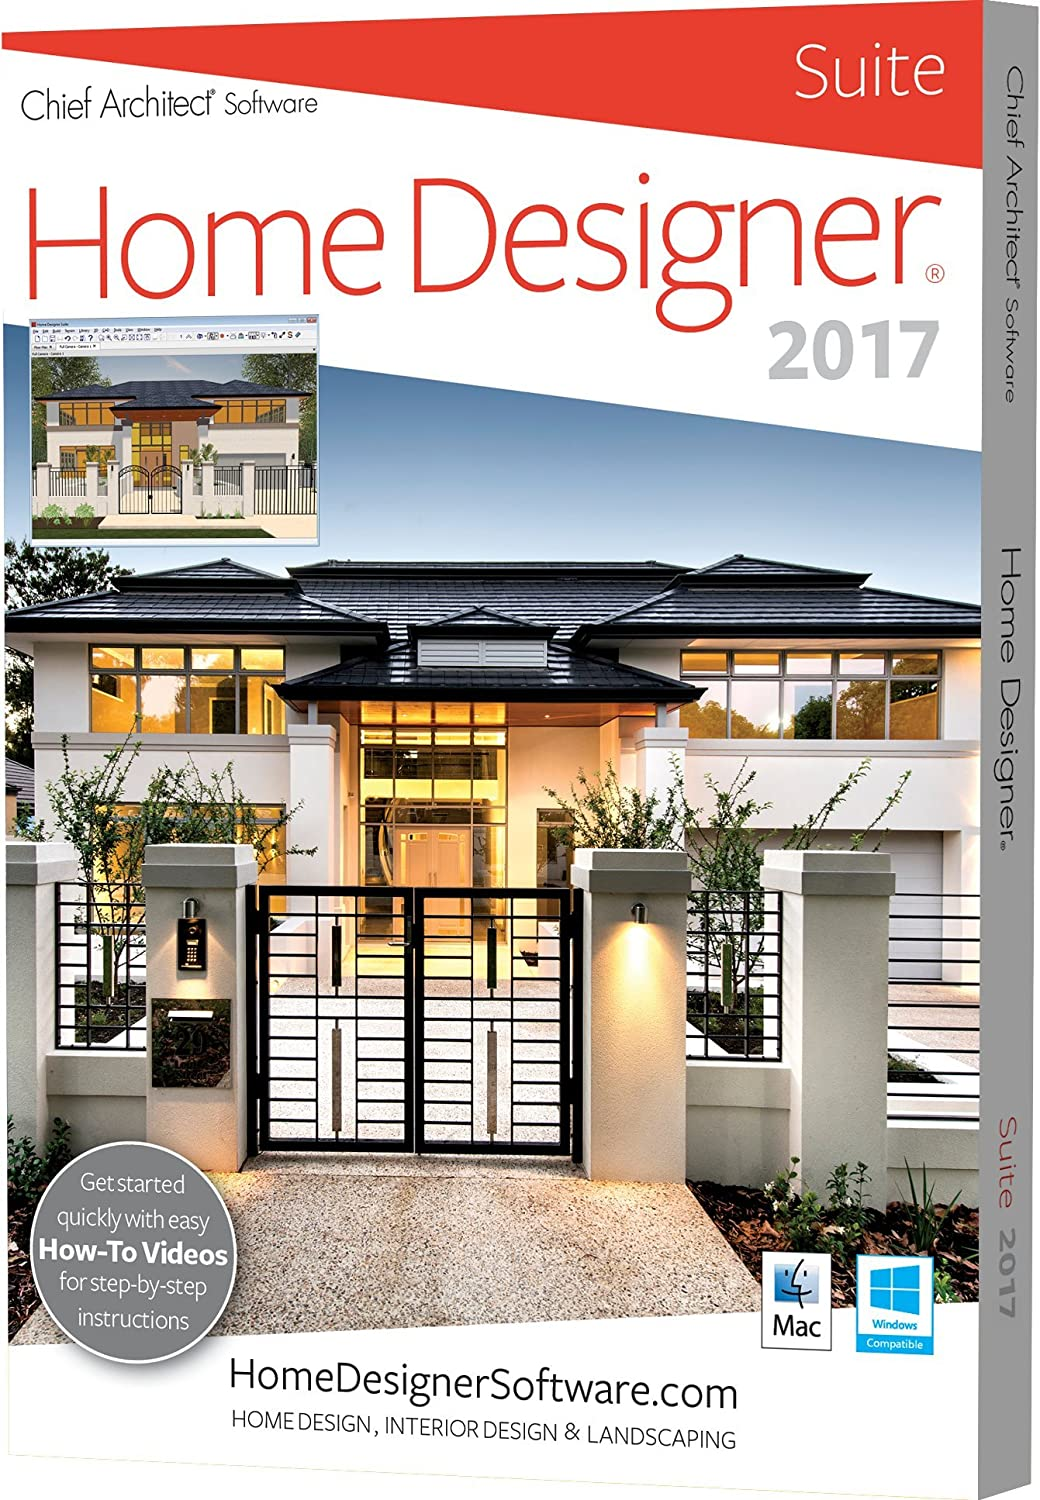 amazoncom chief architect home designer suite 2017 software - Architect Home Designer